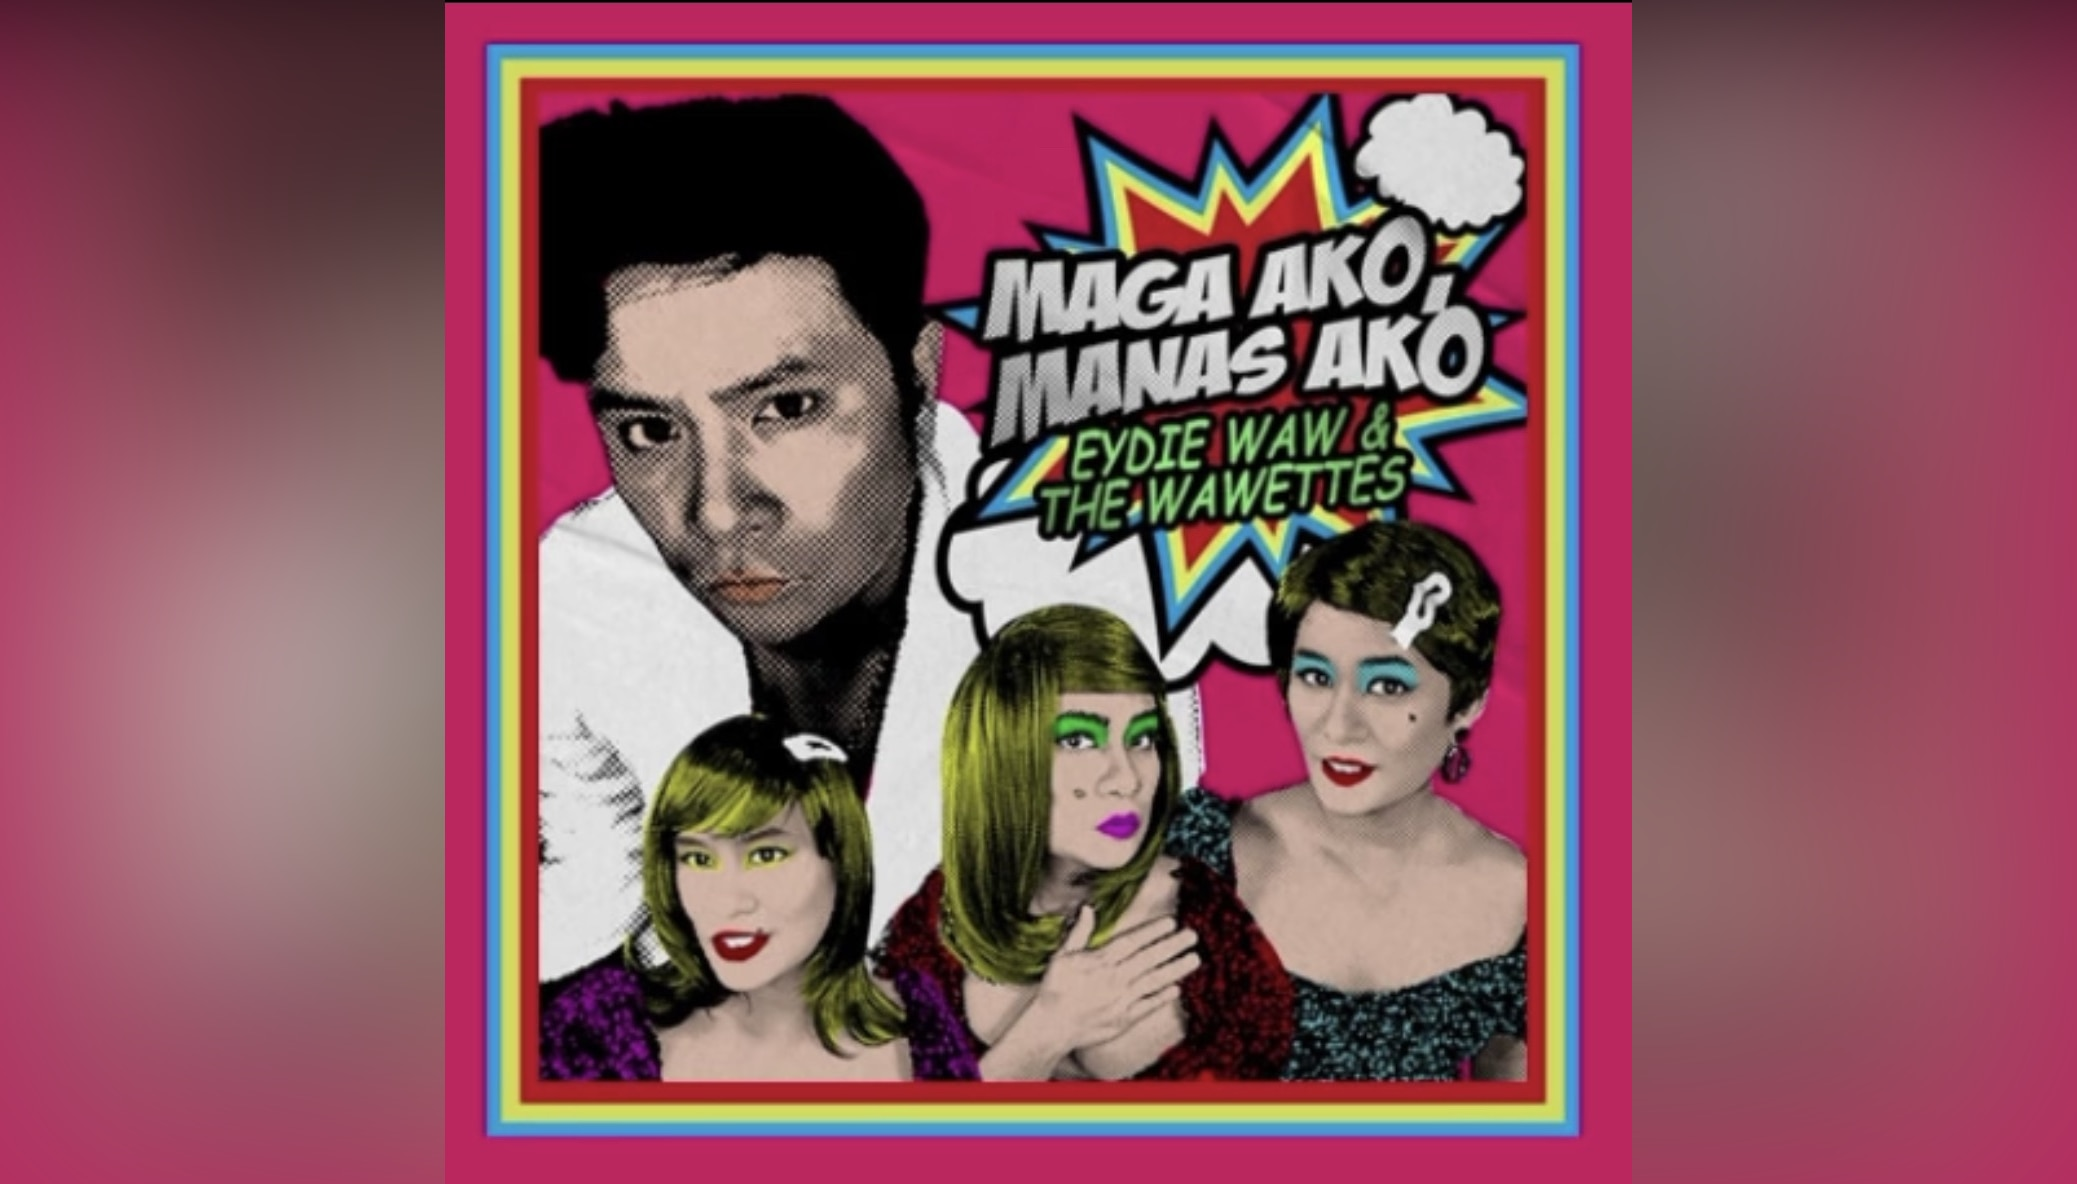 """Ogie introduces Eydie Waw and The Wawettes in funny new track """"Maga Ako, Manas Ako"""""""